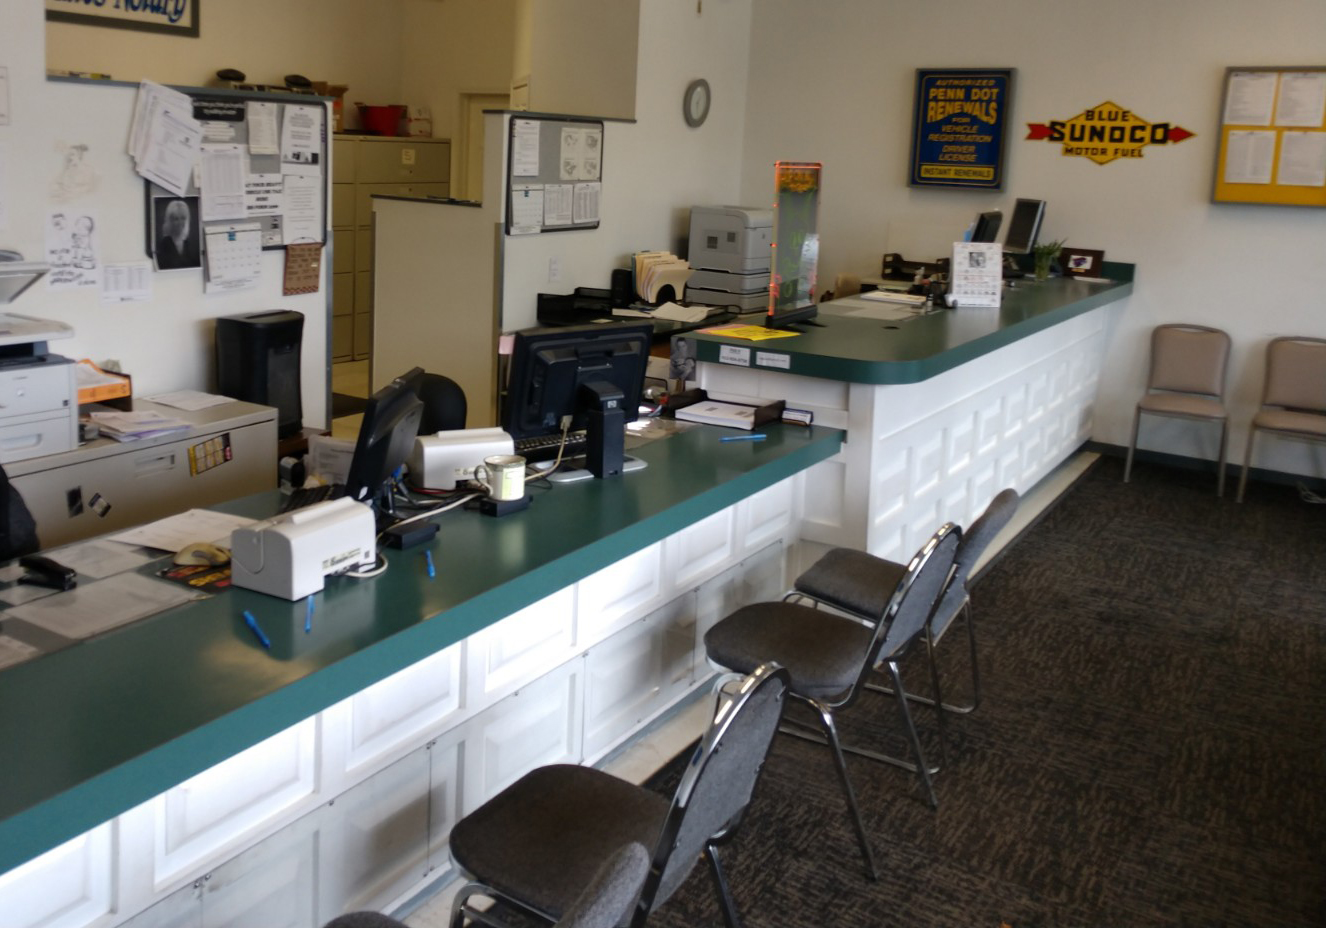 Monroeville Notary, Vehiicle and LIcense Center